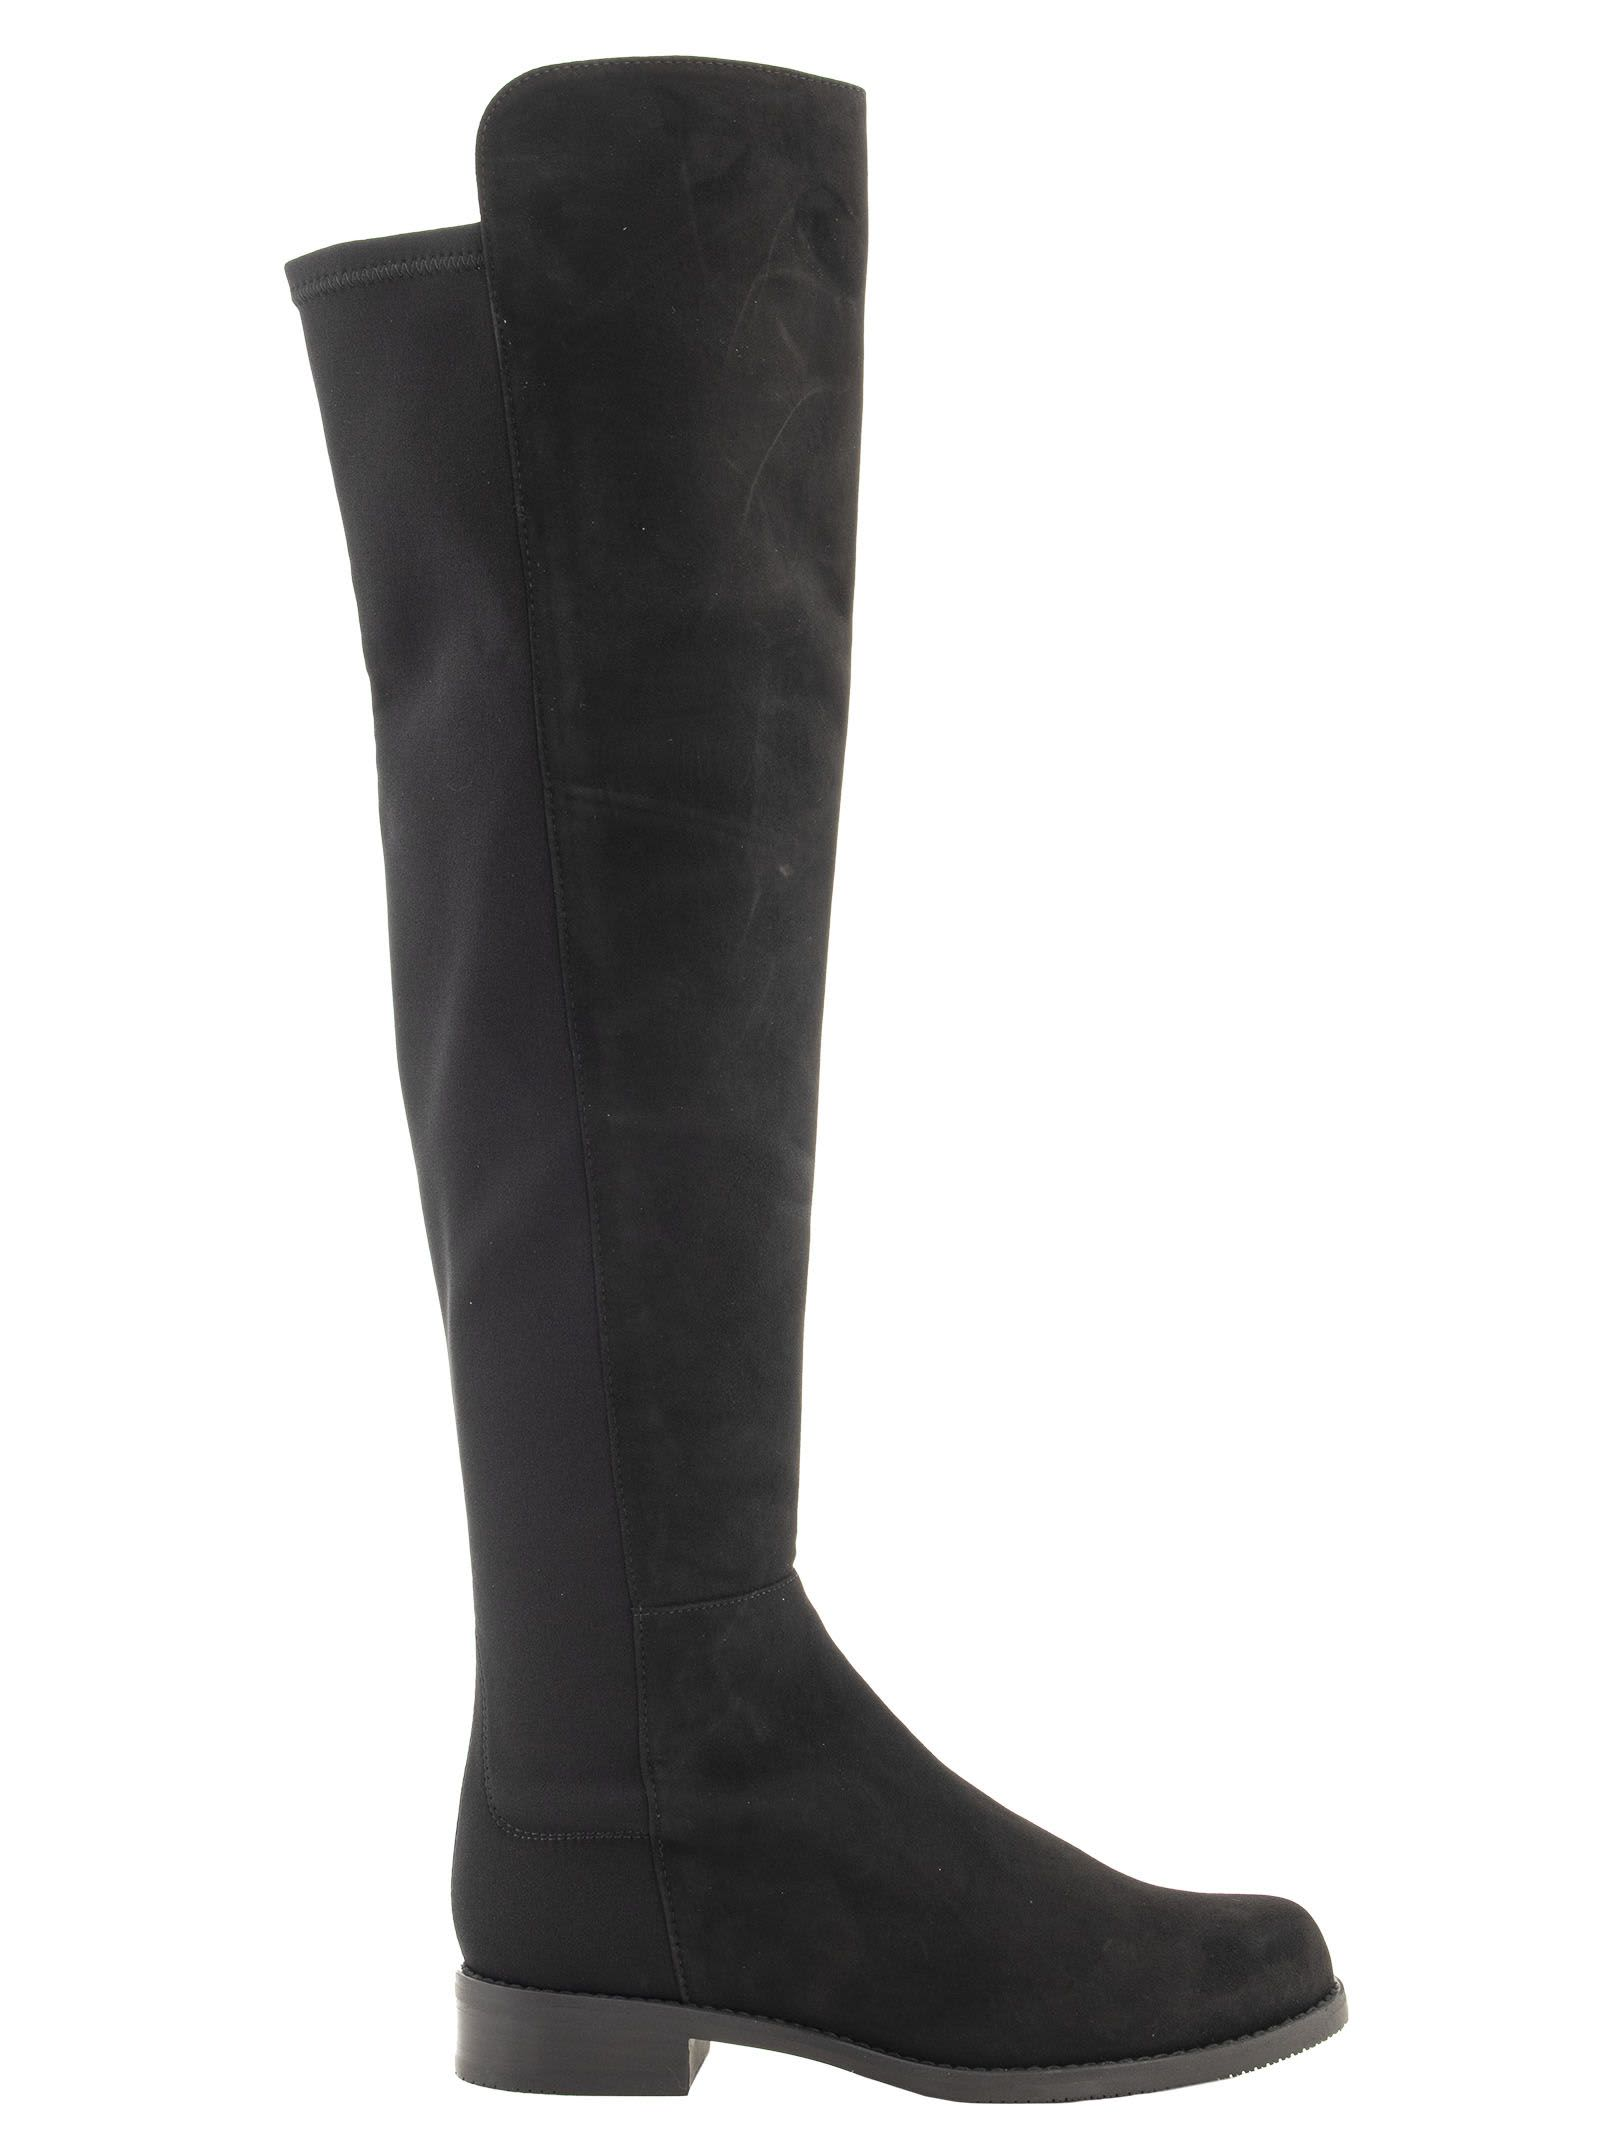 Stuart Weitzman 5050 Boot Suede With Stretch Elastic Back